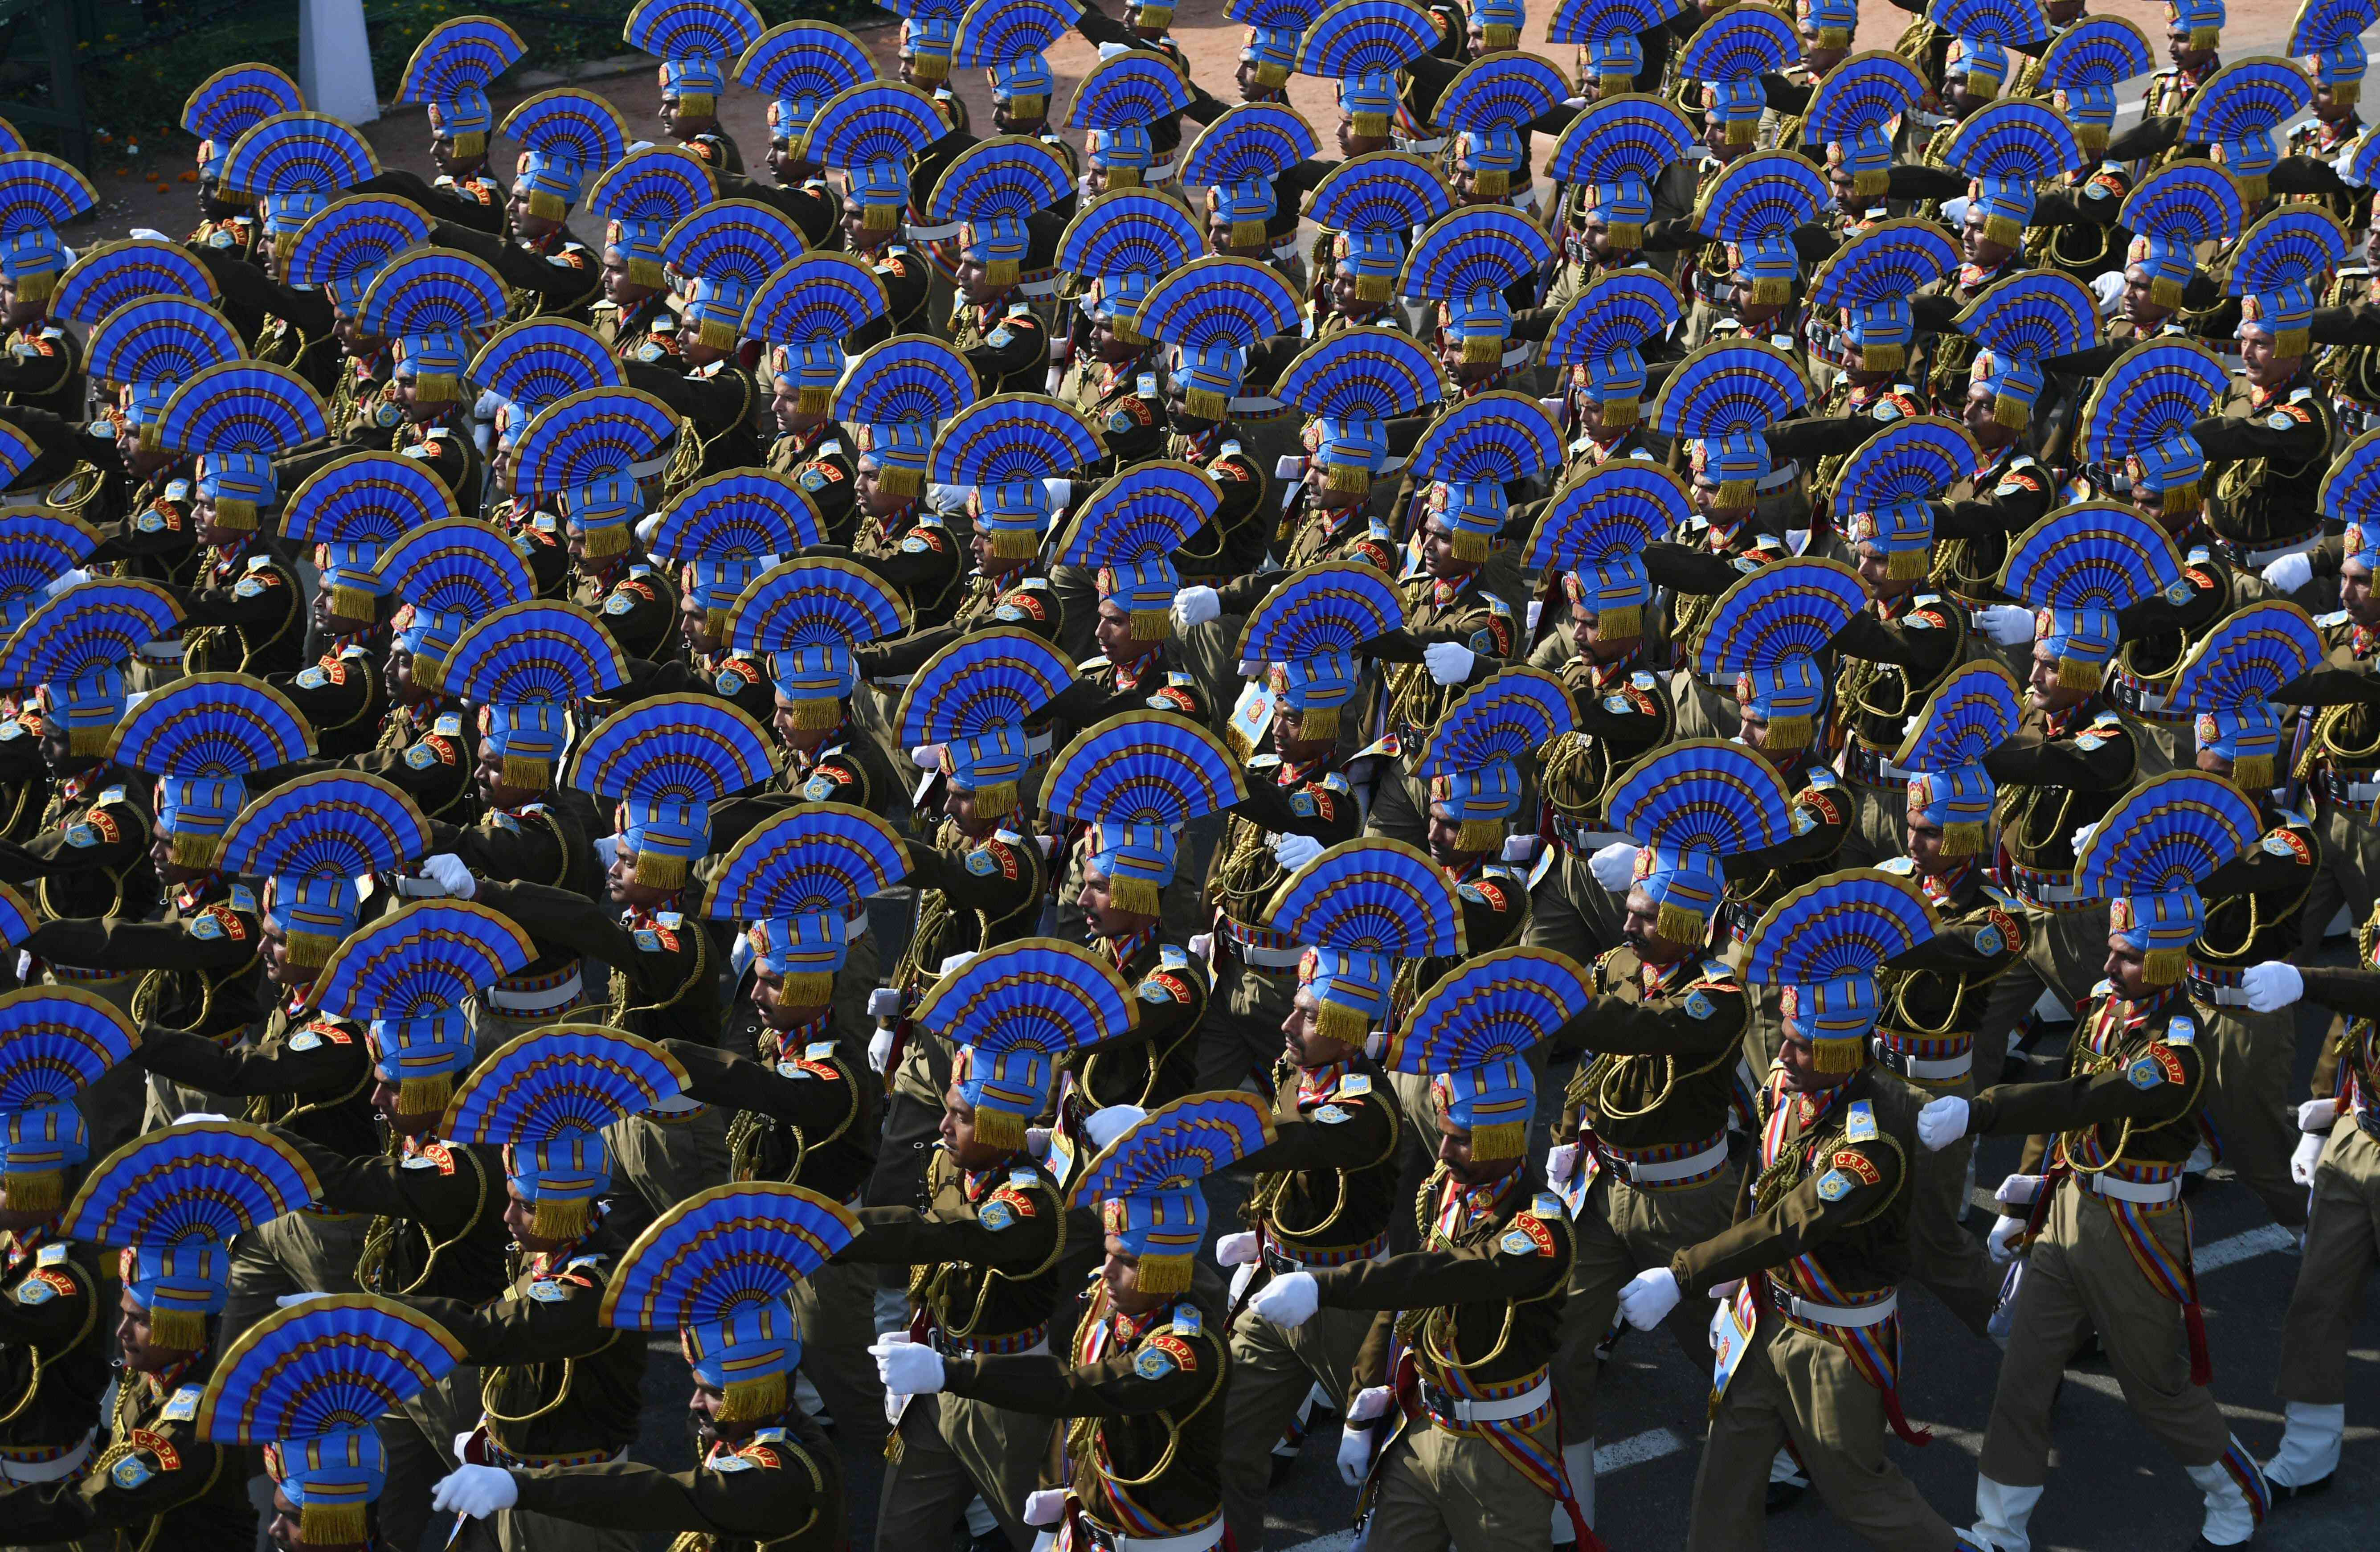 The Central Reserve Police Force contingent marches during the Republic Day parade in New Delhi (Photo credit: AFP)